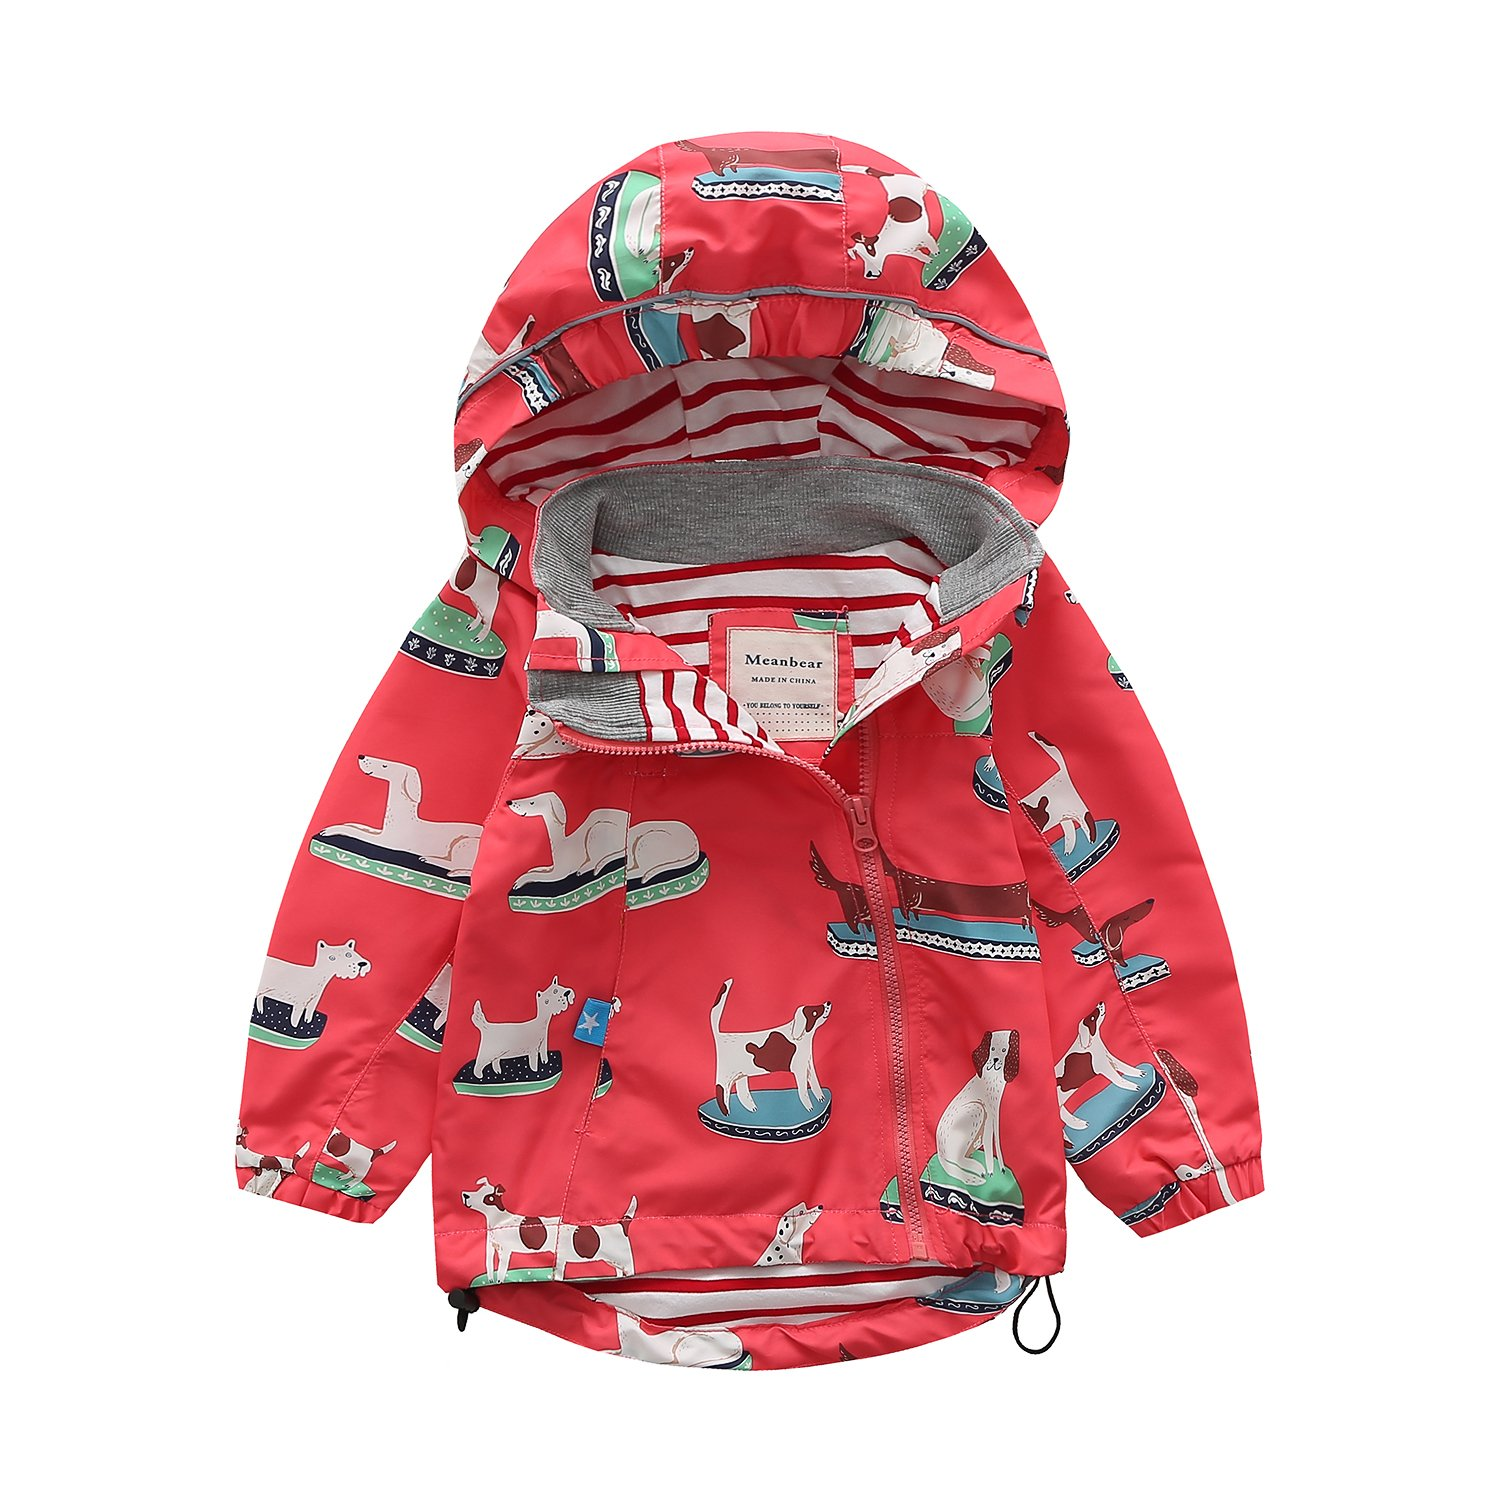 Meanbear Boys & Girls Hooded Cotton Lined Jacket Children's Outdoor Light Windbreaker Kids Rain Jacket Dog Printed (6 Years)